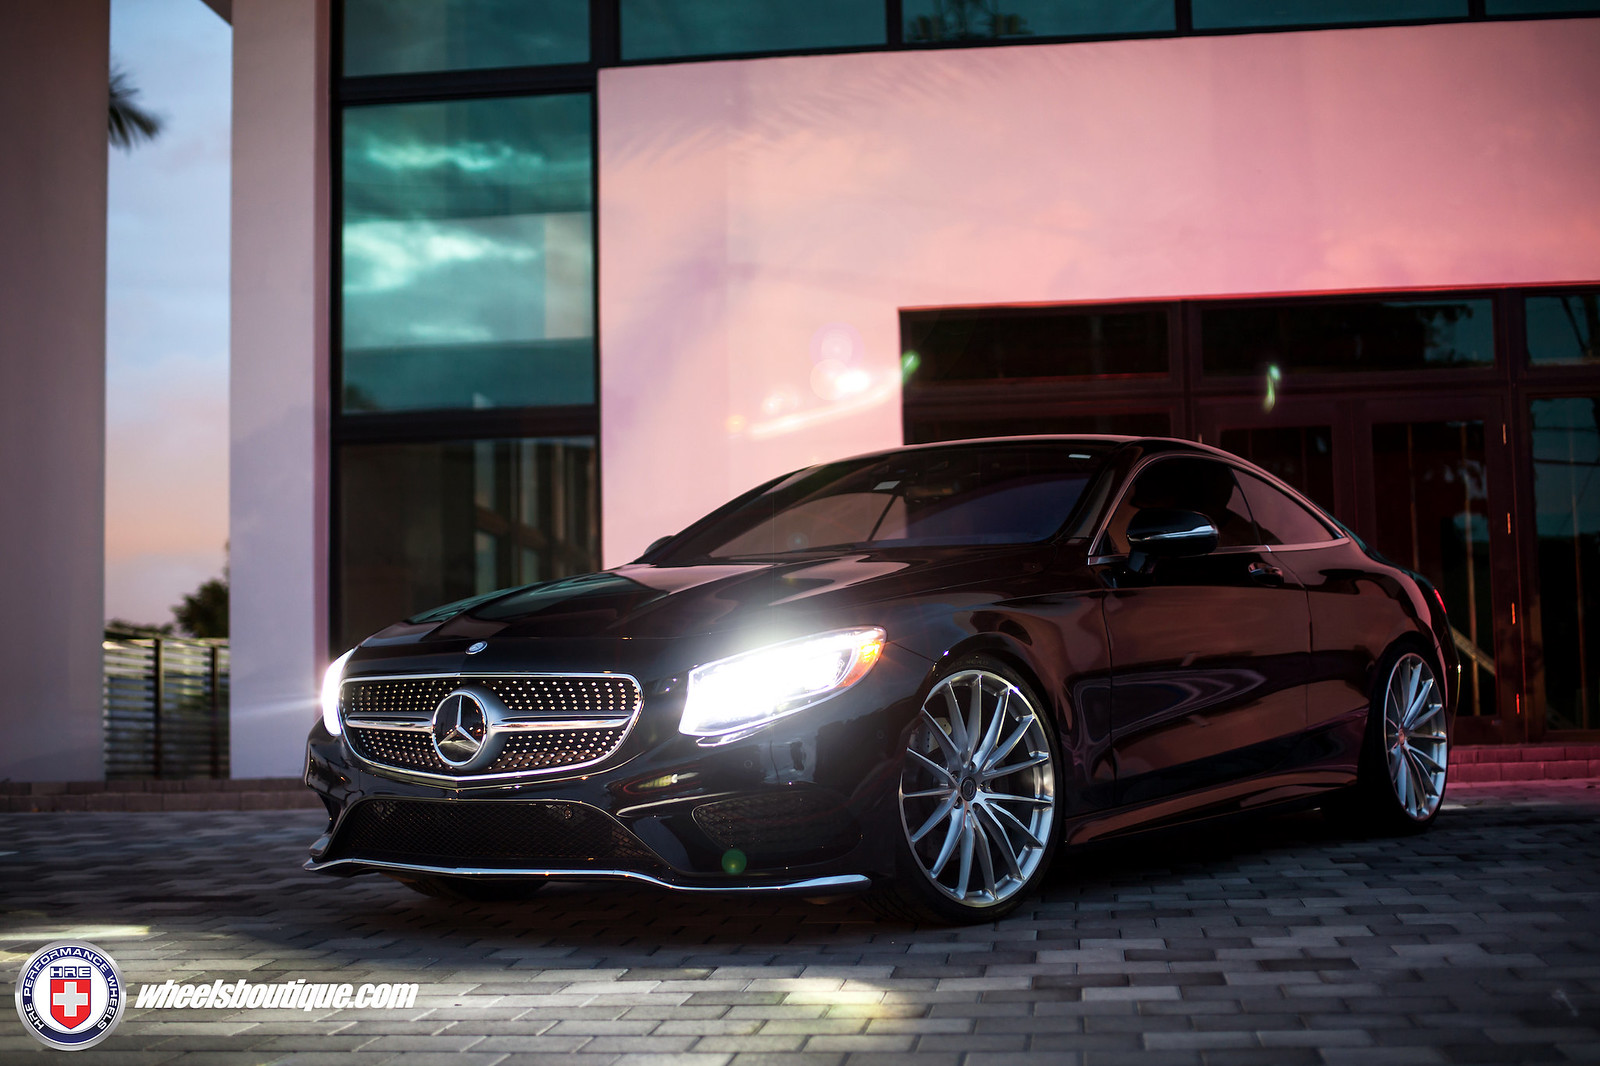 Pirelli P Zero Nero >> Mercedes Benz S550 Coupe on HRE P103's by Wheels Boutique - McLaren Life